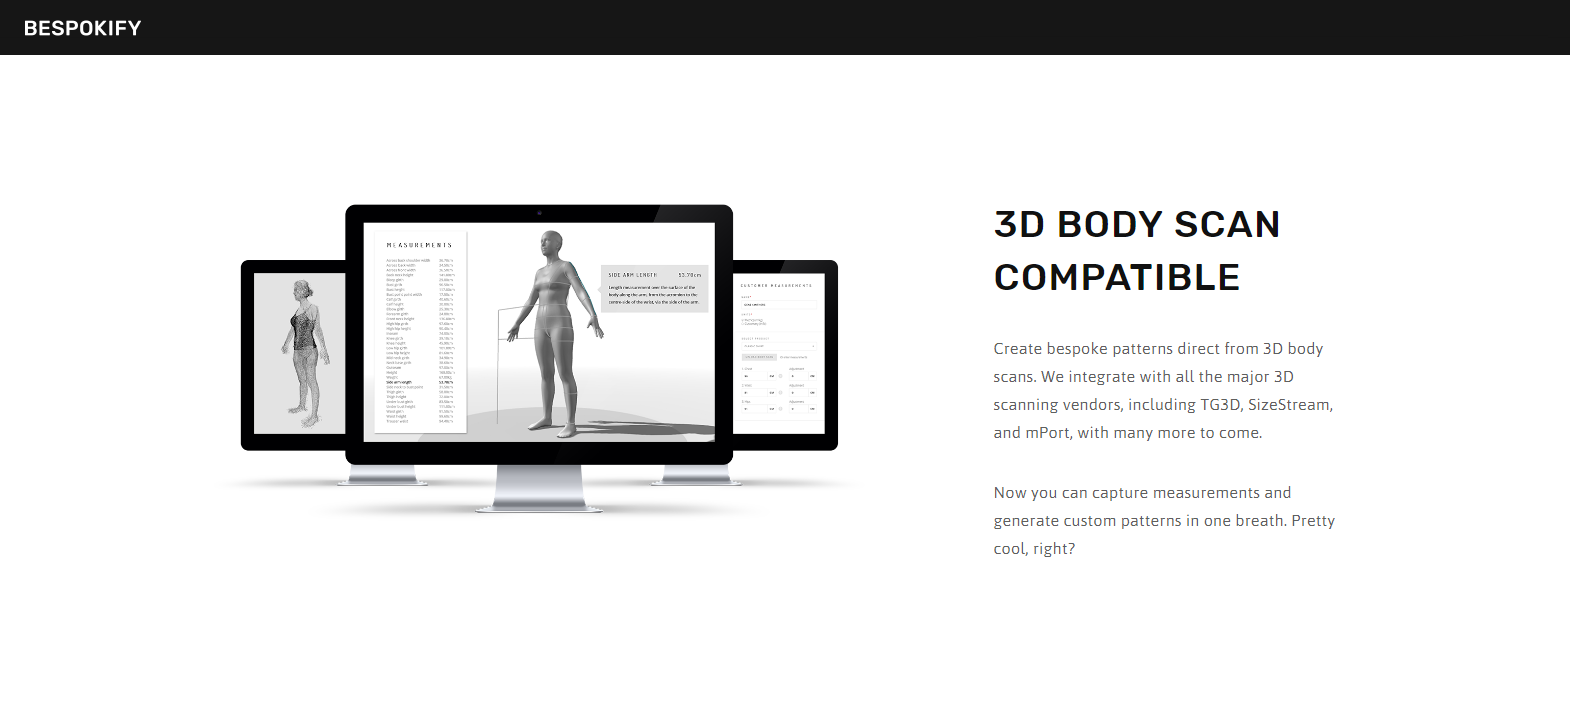 3-D-body-scanners-to-take-body-measurements-for-online-dress-ordering